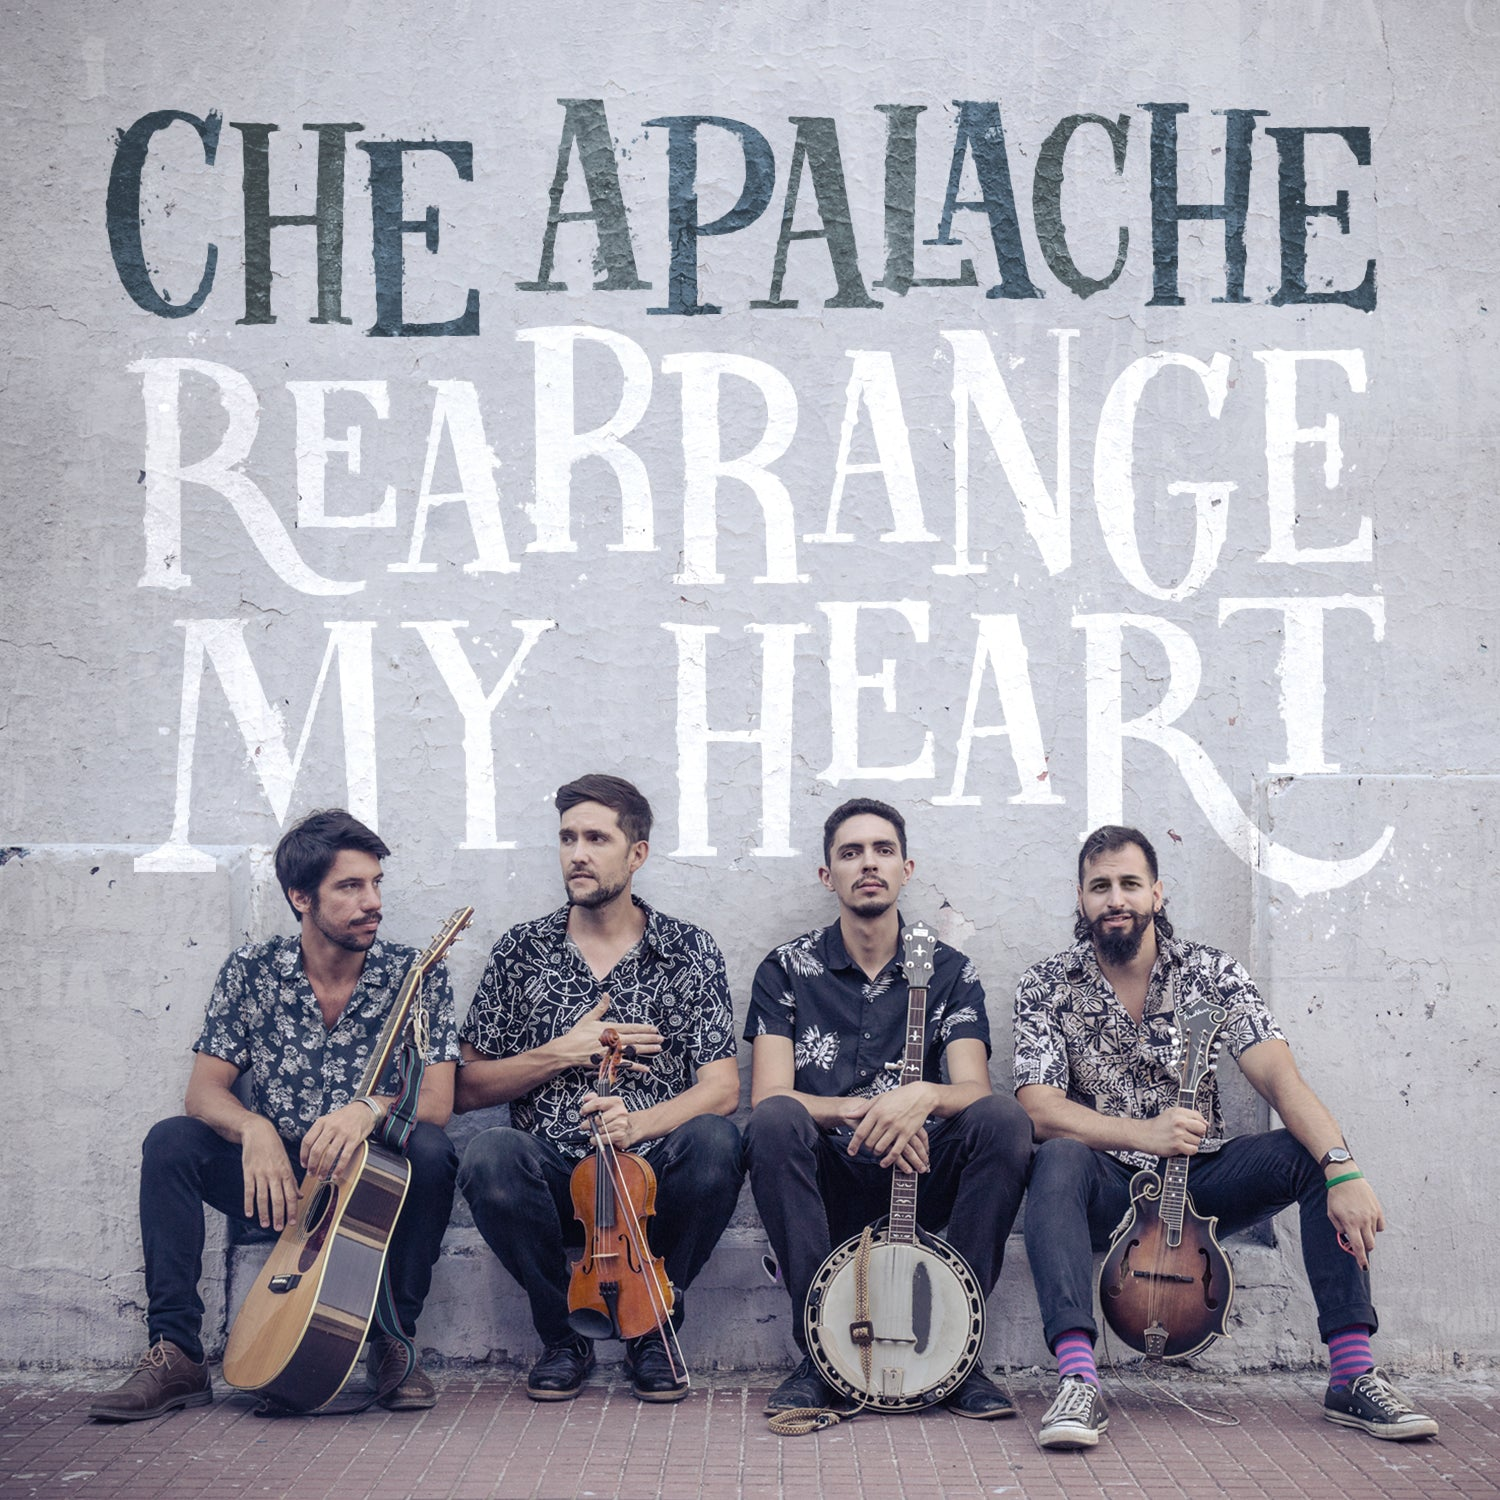 Che Apalache 'Rearrange My Heart' Album Cover